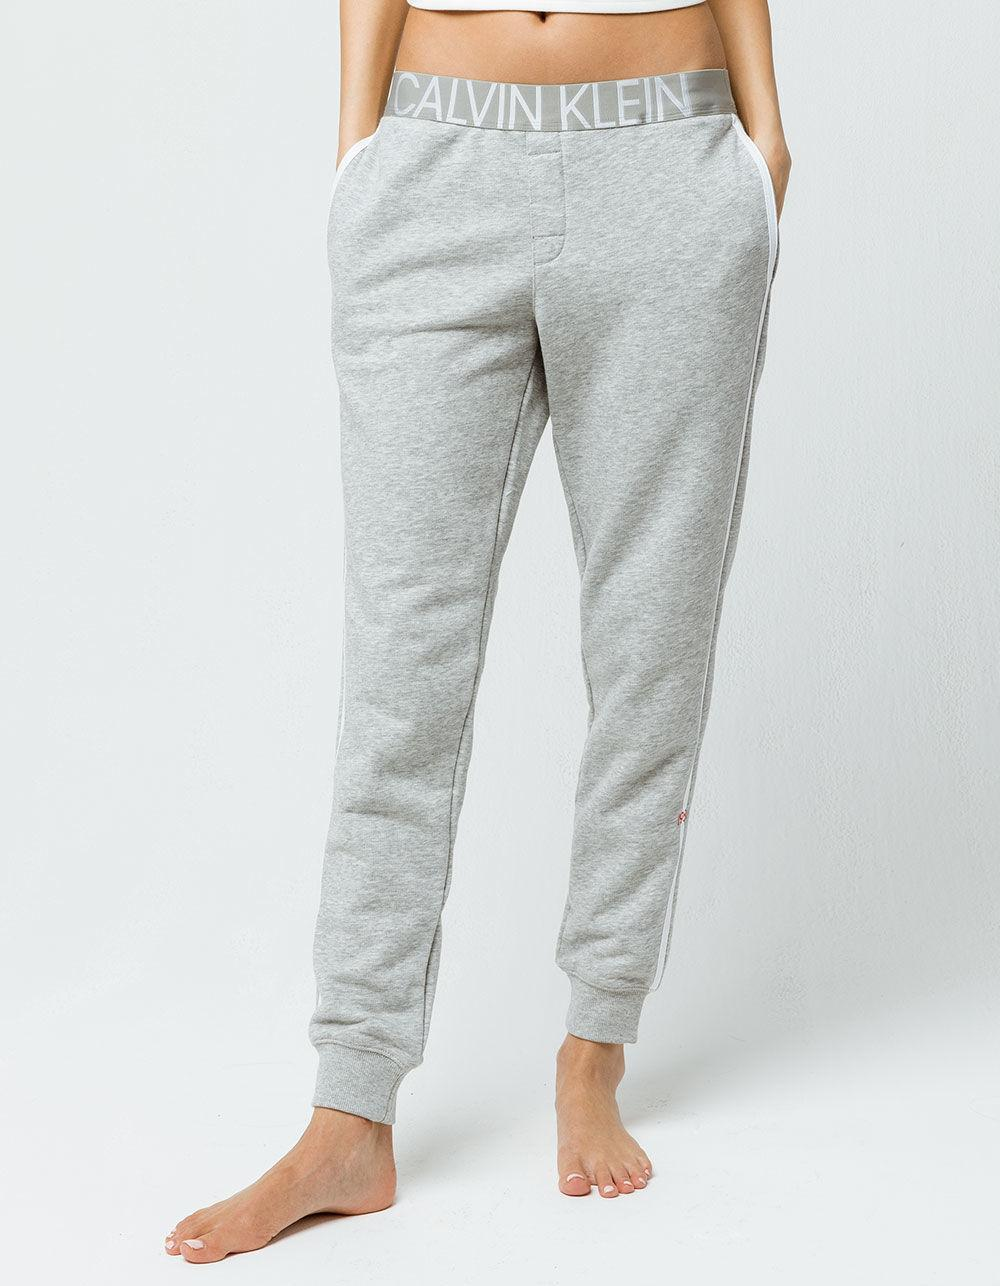 Lyst - Calvin Klein Lounge Heather Gray Womens Jogger Pants in Black c75529d3f